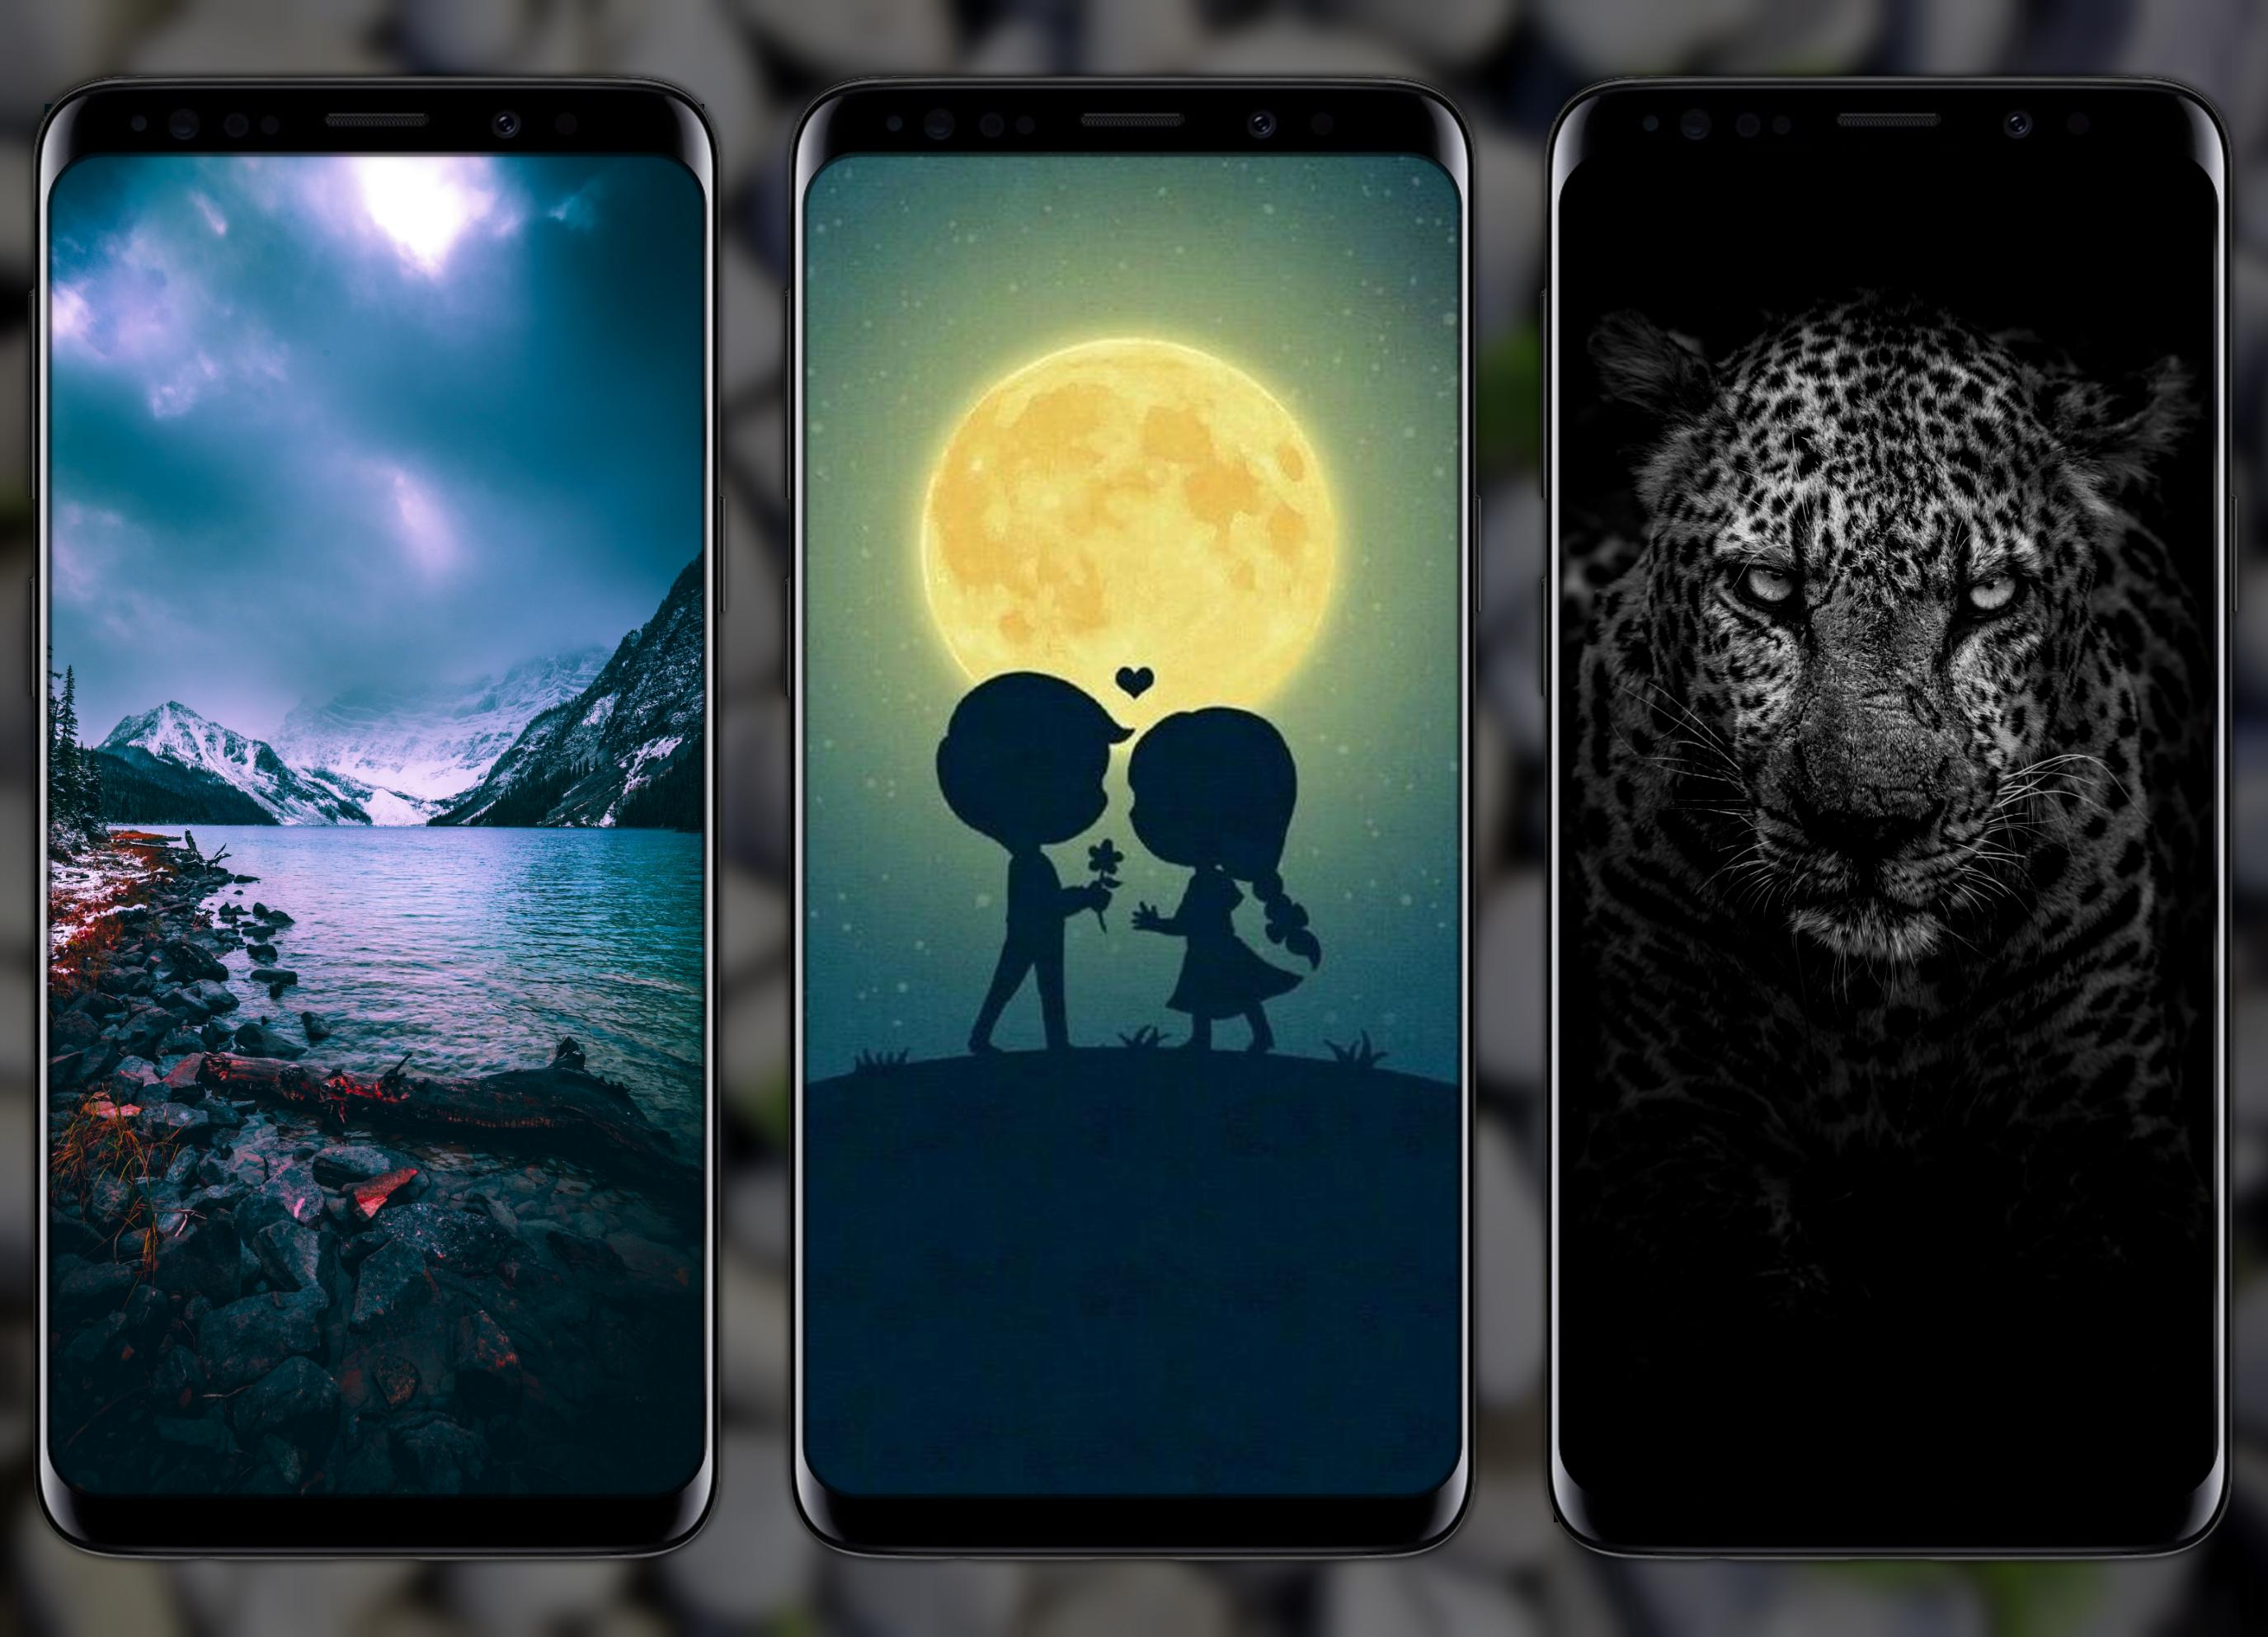 25000 Hd Wallpapers Full Ultra Hd Backgrounds For Android Apk Download